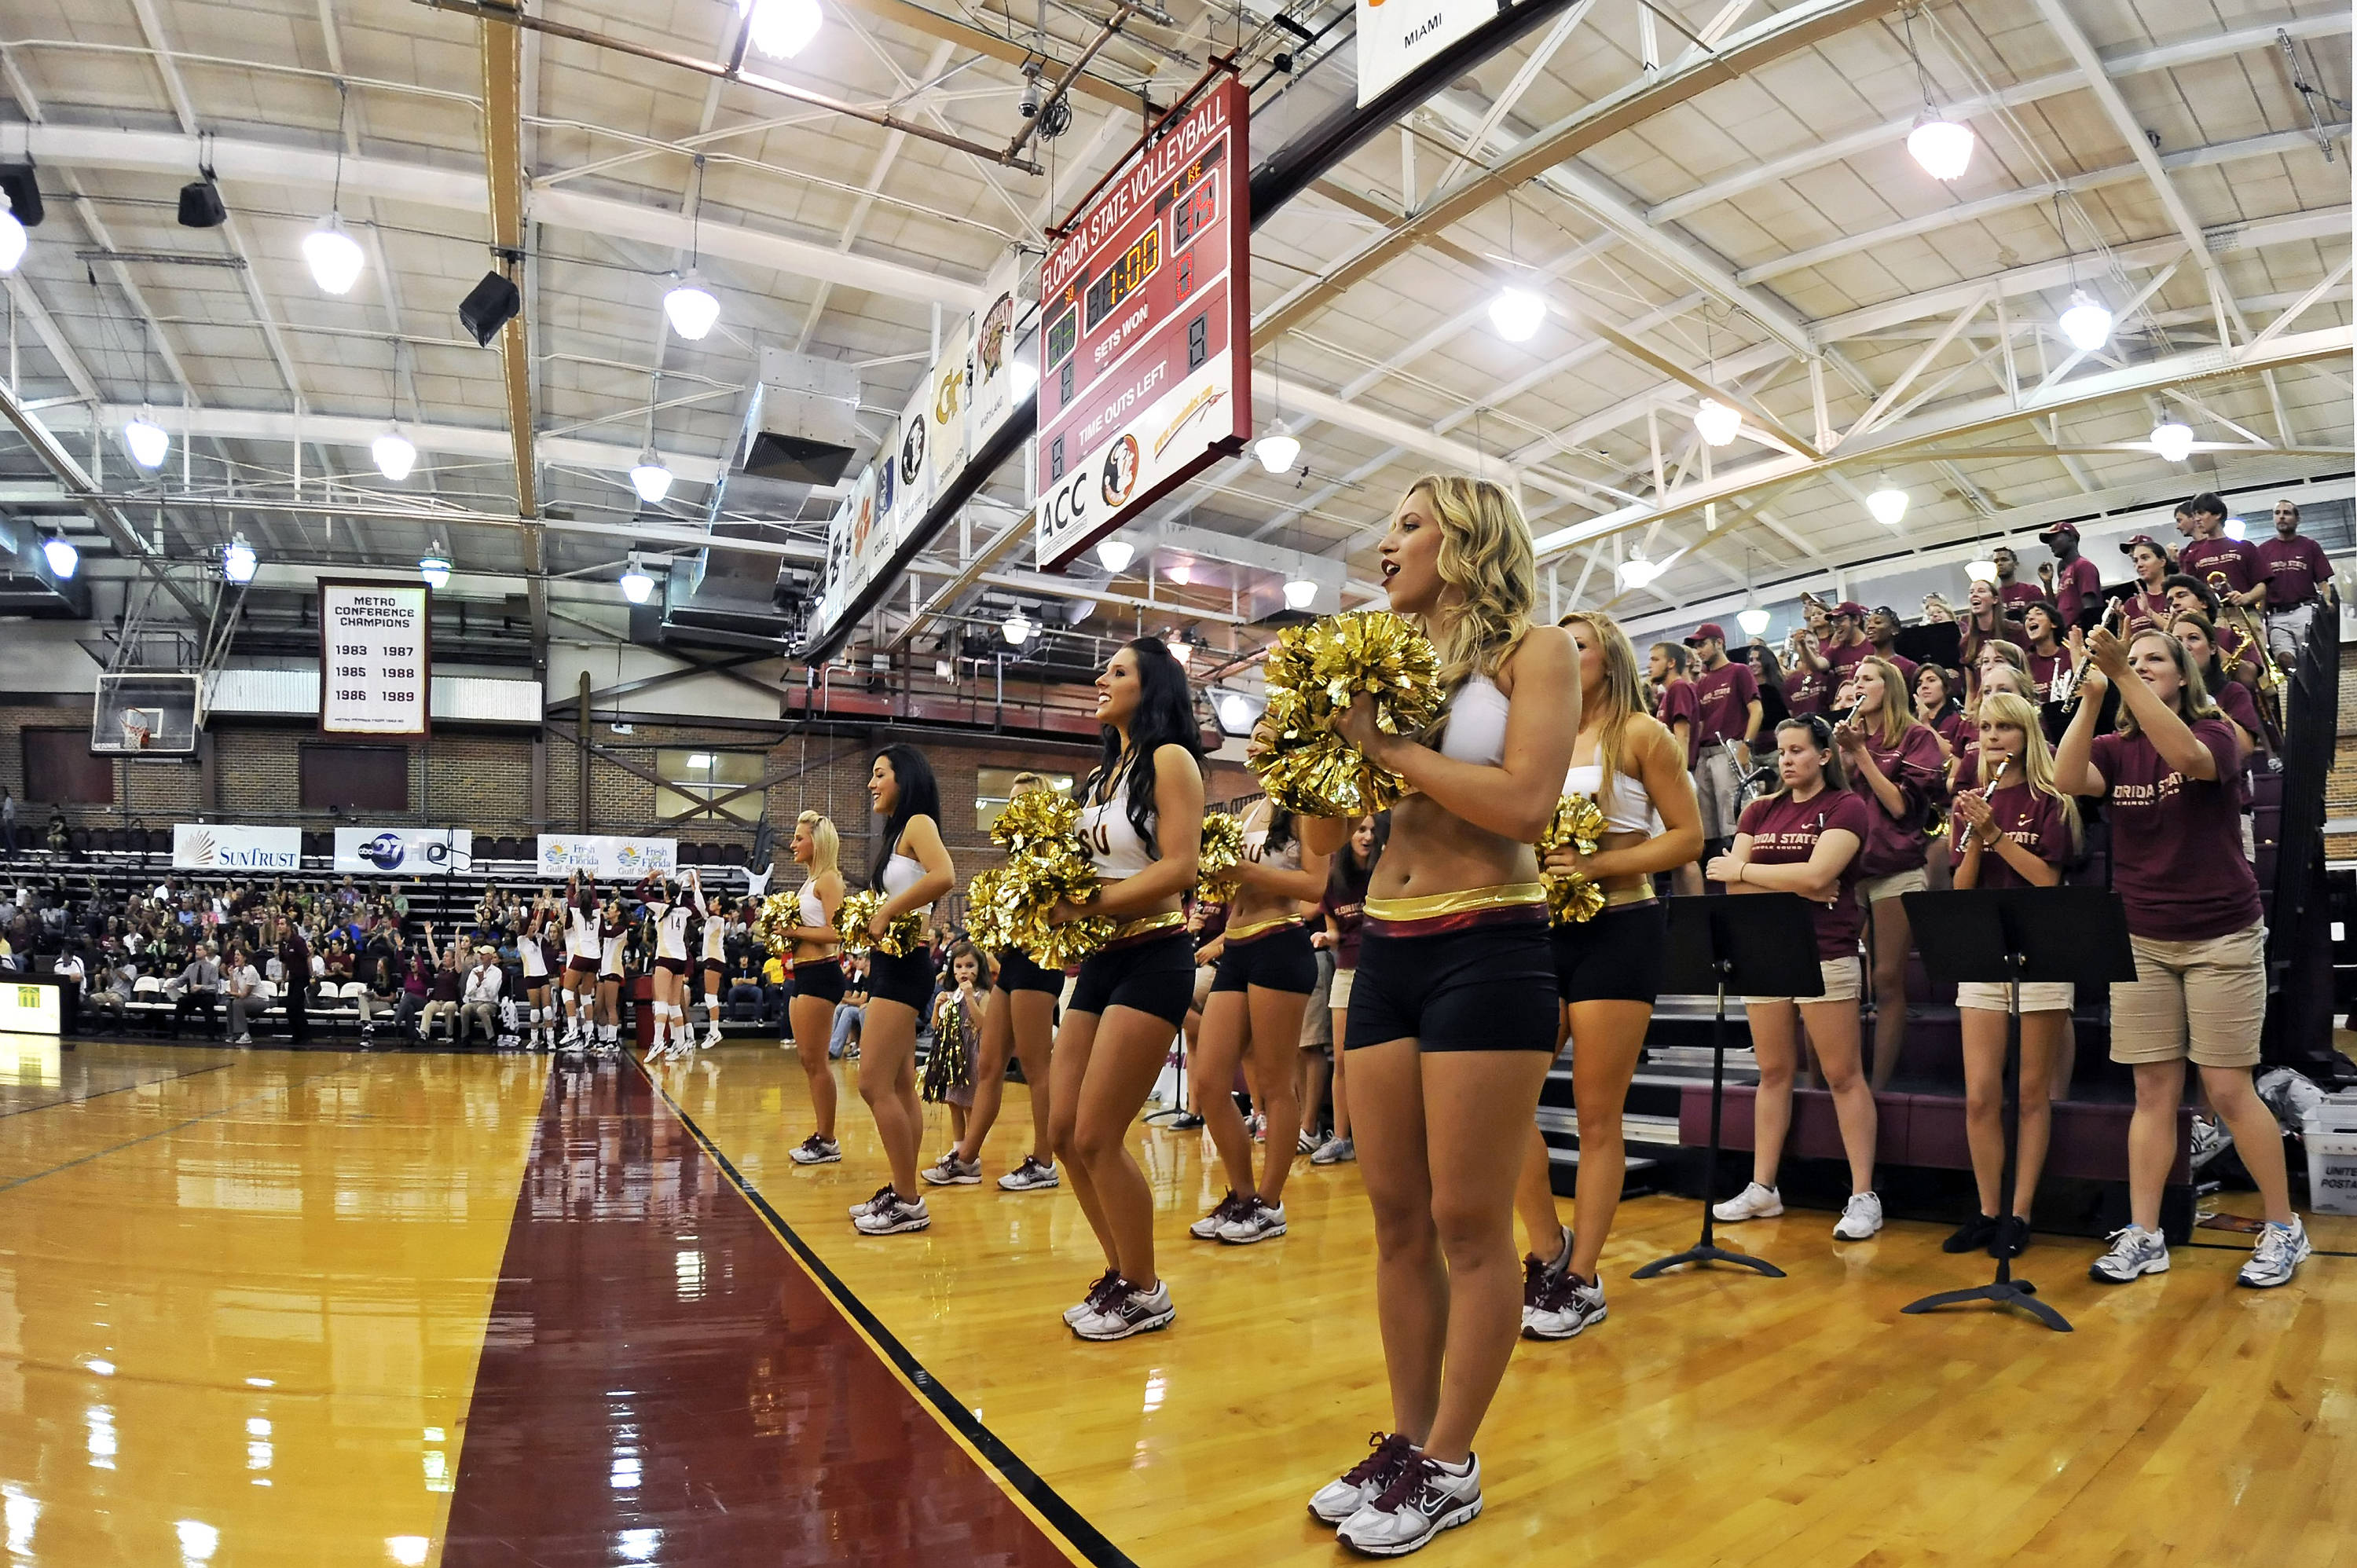 The cheerleaders and band help create a tremendous atmosphere.